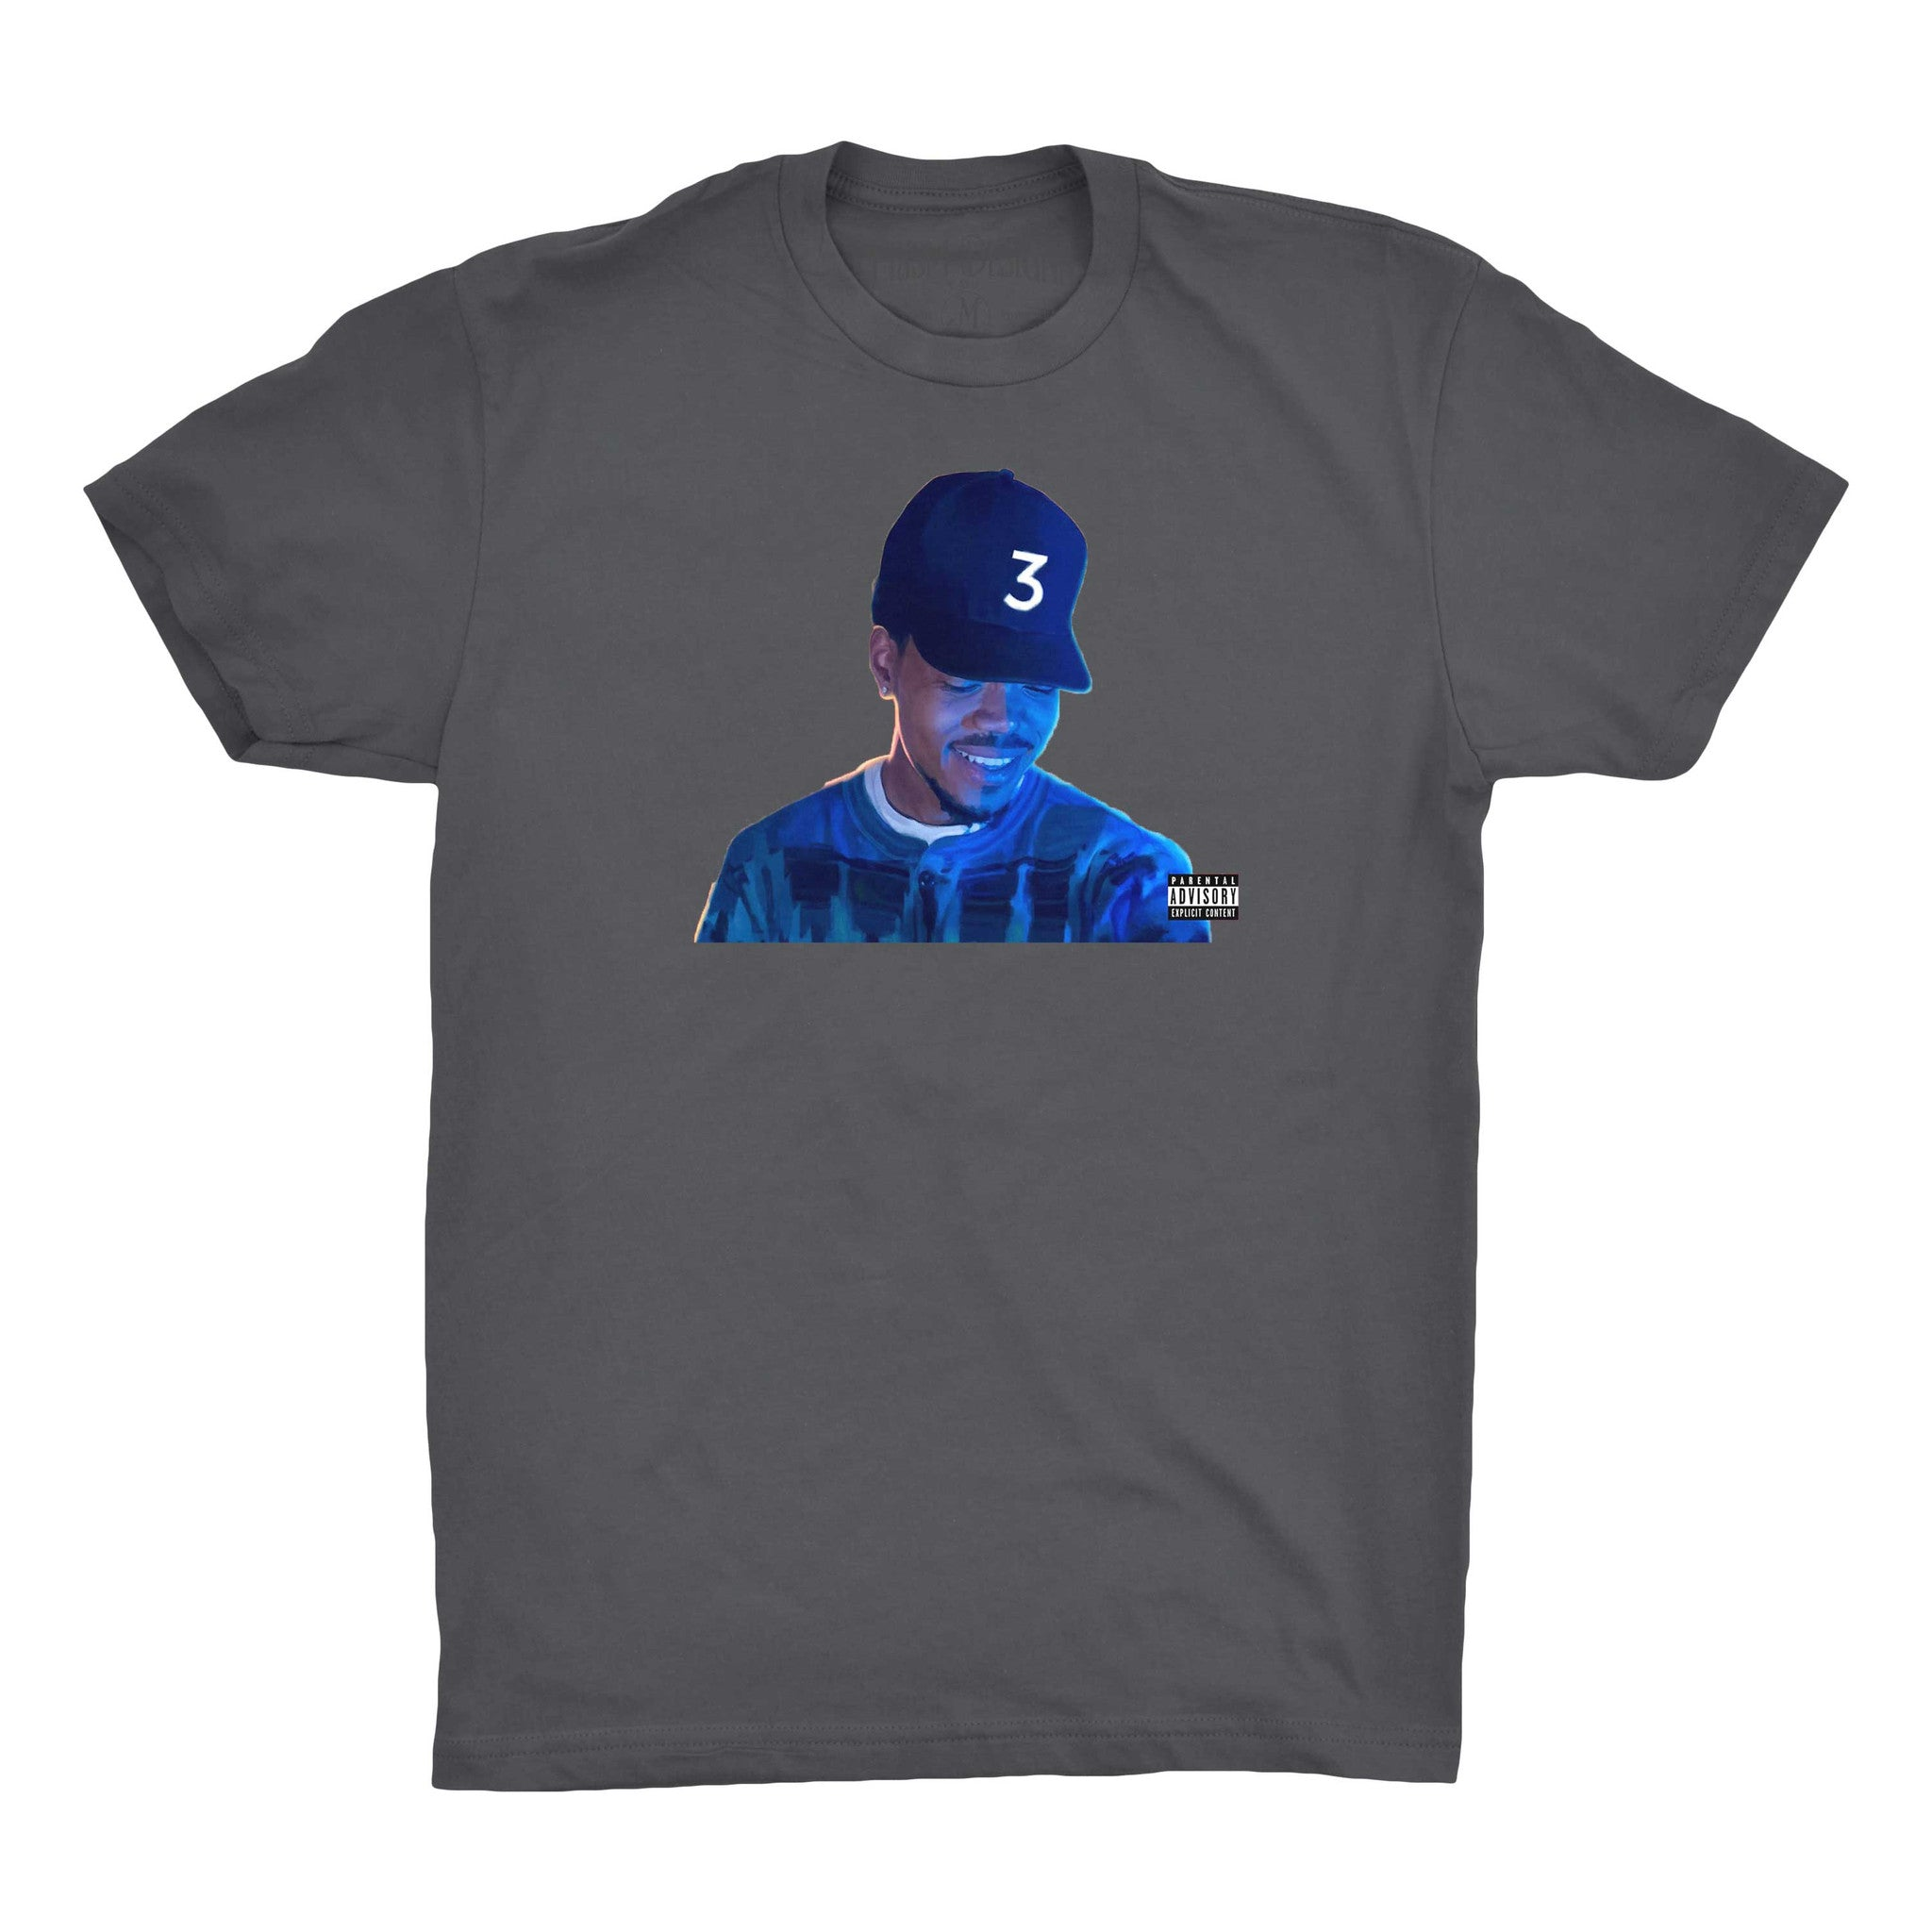 Coloring book chance -  Chance The Rapper Coloring Book Premium T Shirt